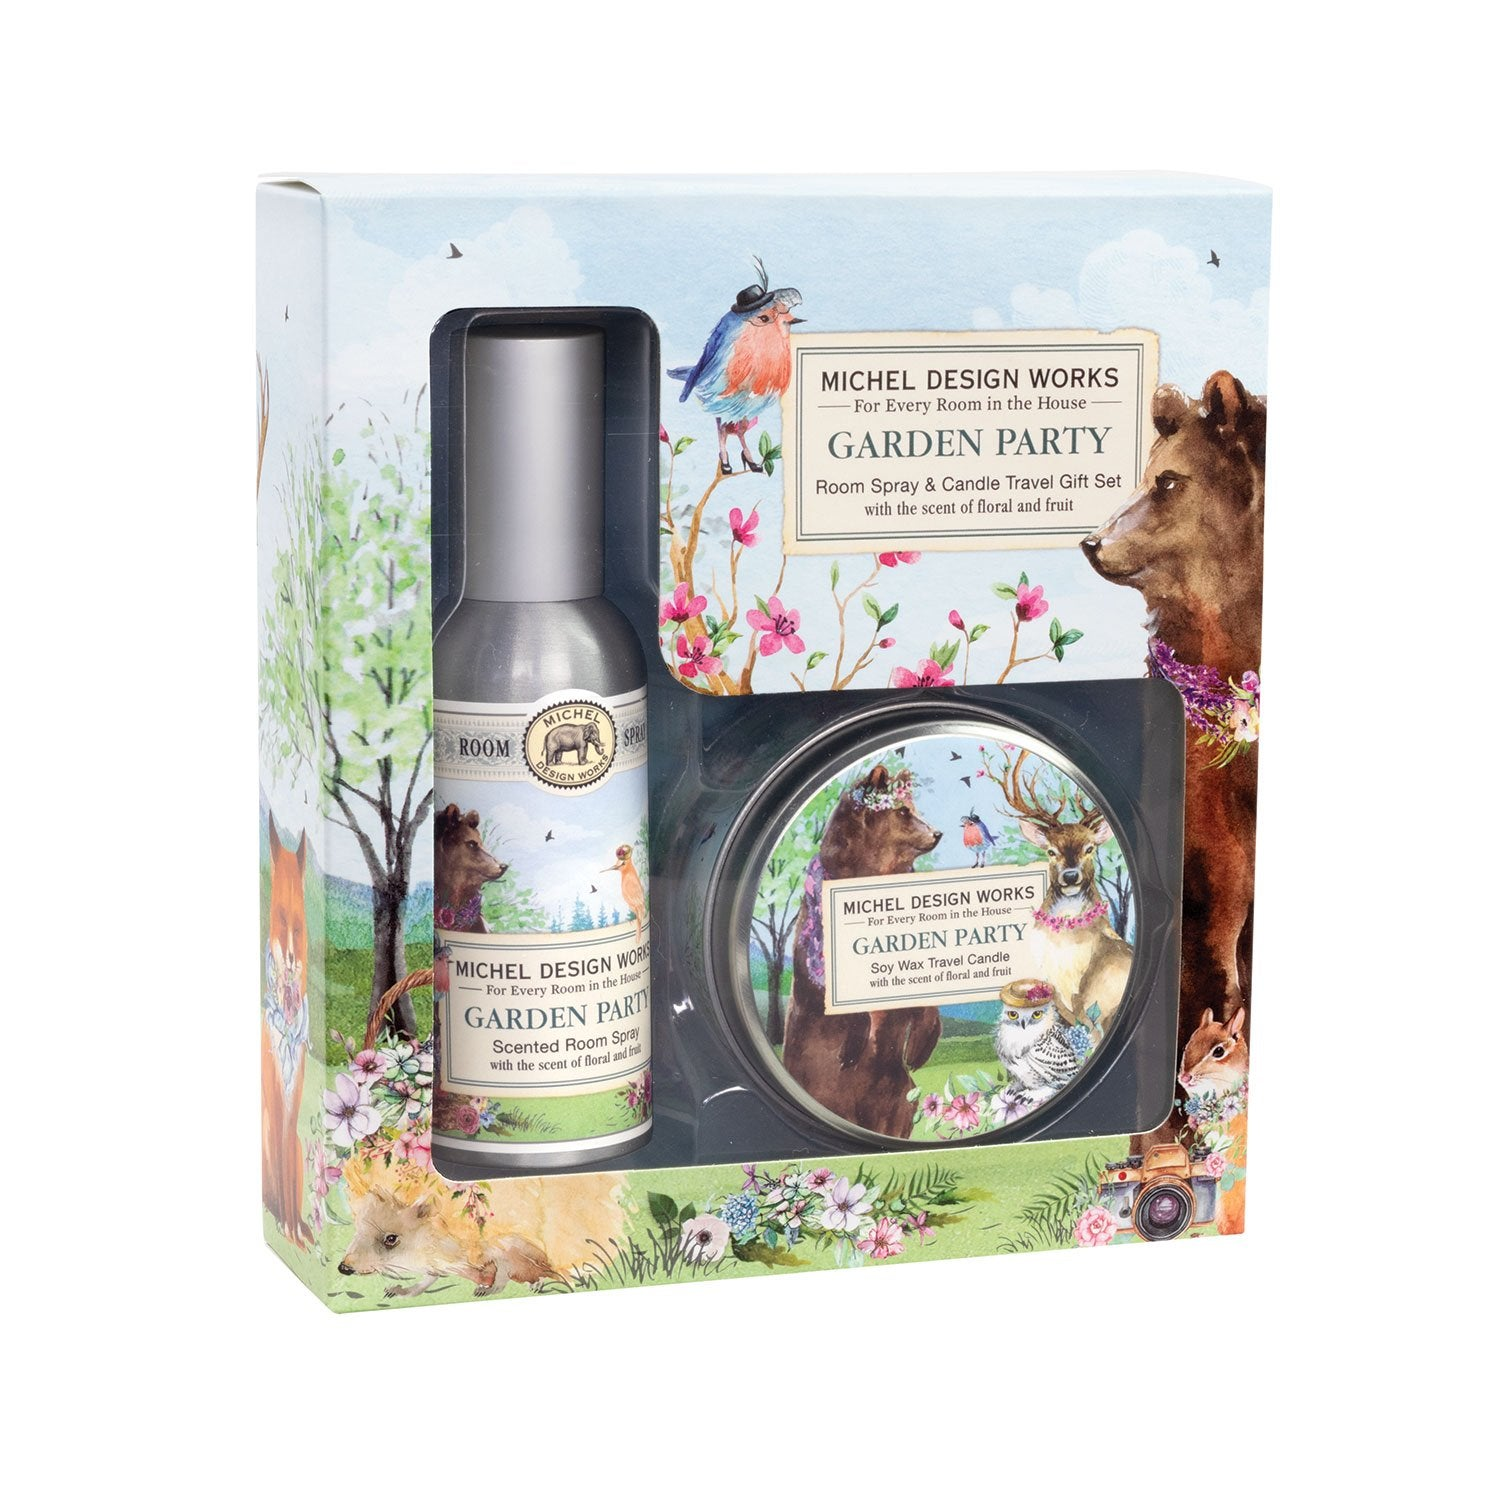 Garden Party Room Spray and Candle Travel Gift Sets